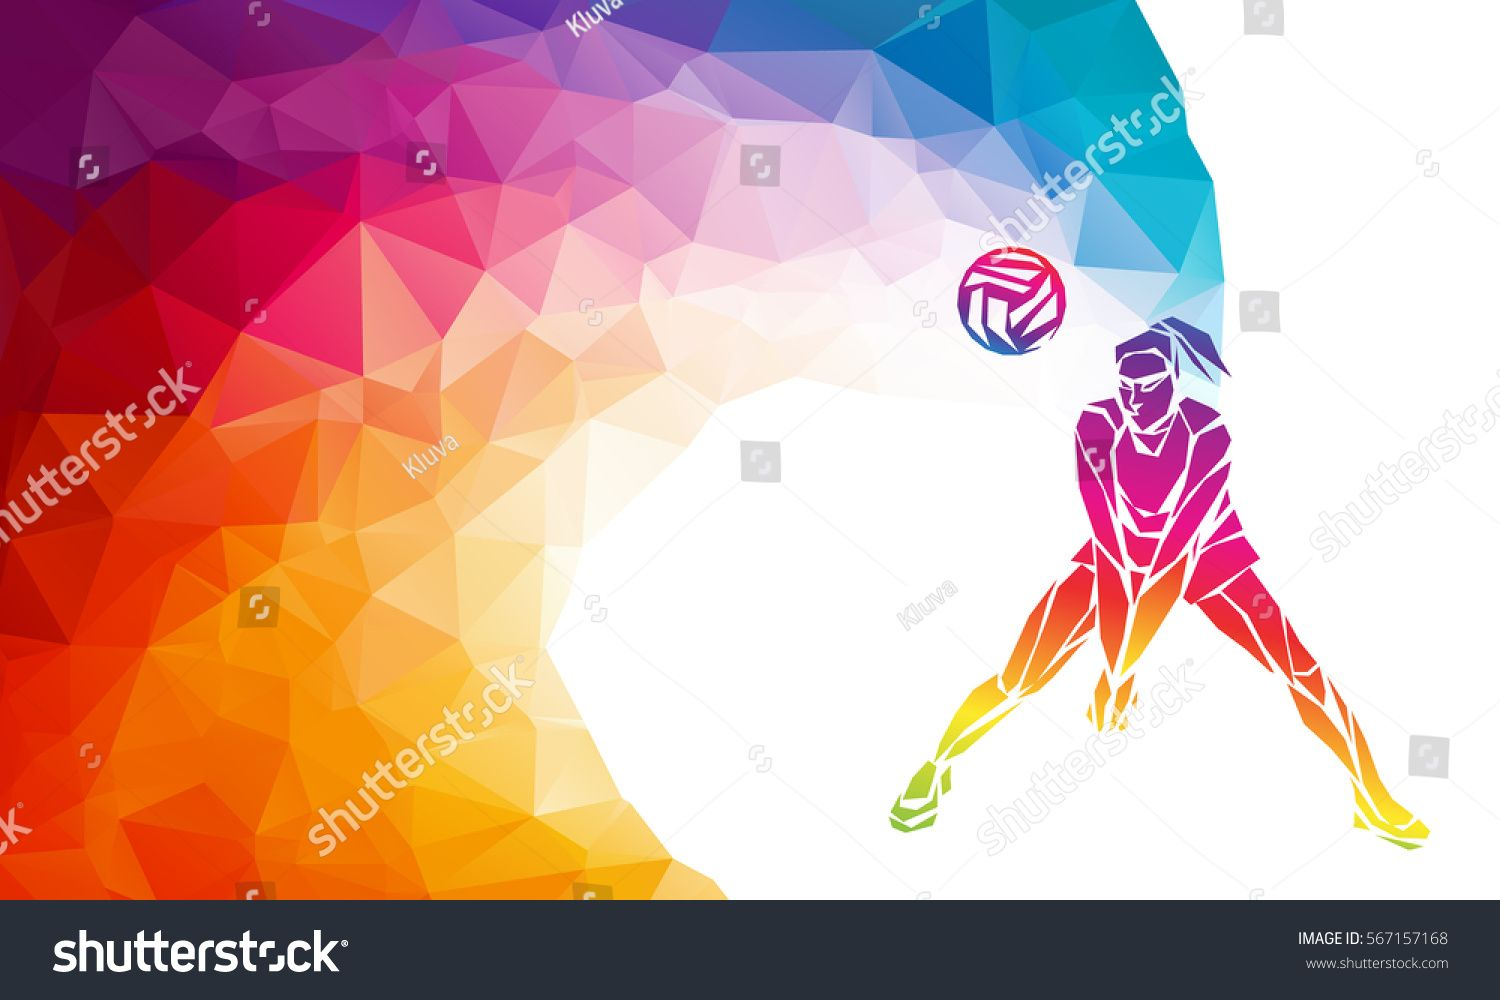 Creative Silhouette Of Volleyball Player Receiving A Ball Beach Sport Colorful Vector Illustration Or Banner Banner Template Beach Sports Vector Illustration